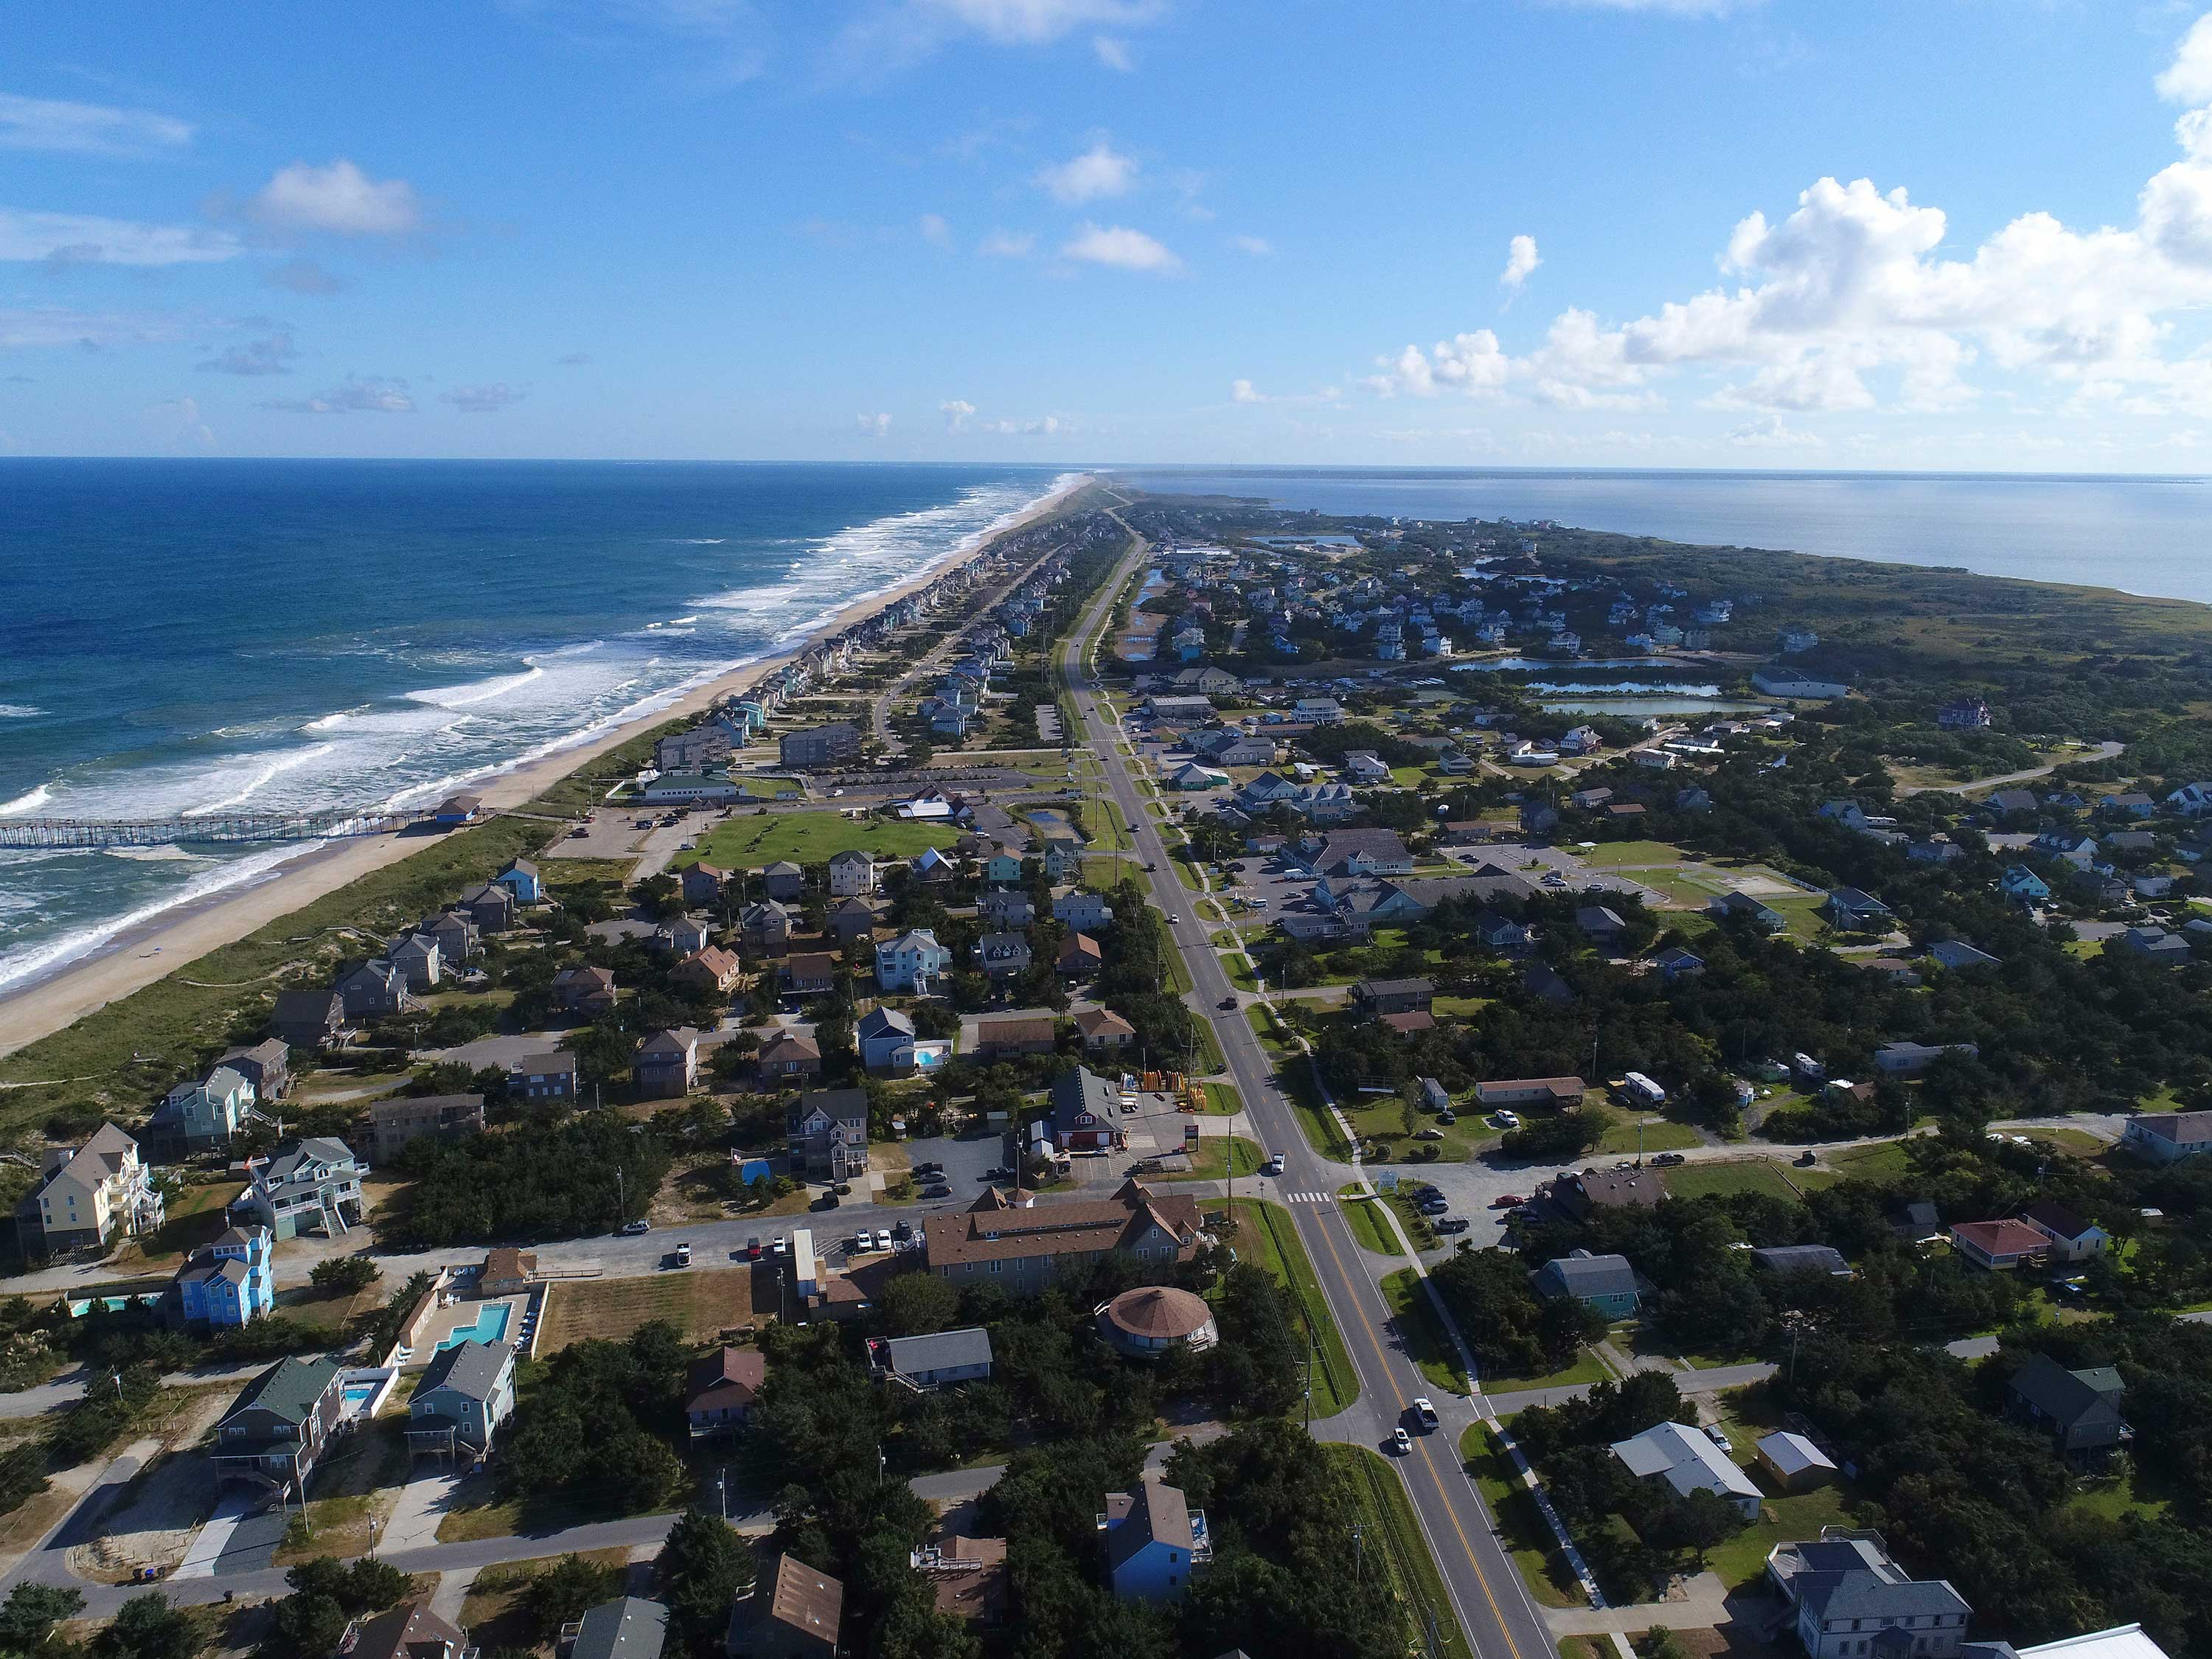 <div class='meta'><div class='origin-logo' data-origin='none'></div><span class='caption-text' data-credit=''>In this Monday afternoon, Sept. 10, 2018 photo provided by DroneBase, an aerial view of Avon, N.C., in the Outer Banks is shown ahead of Hurricane Florence.</span></div>